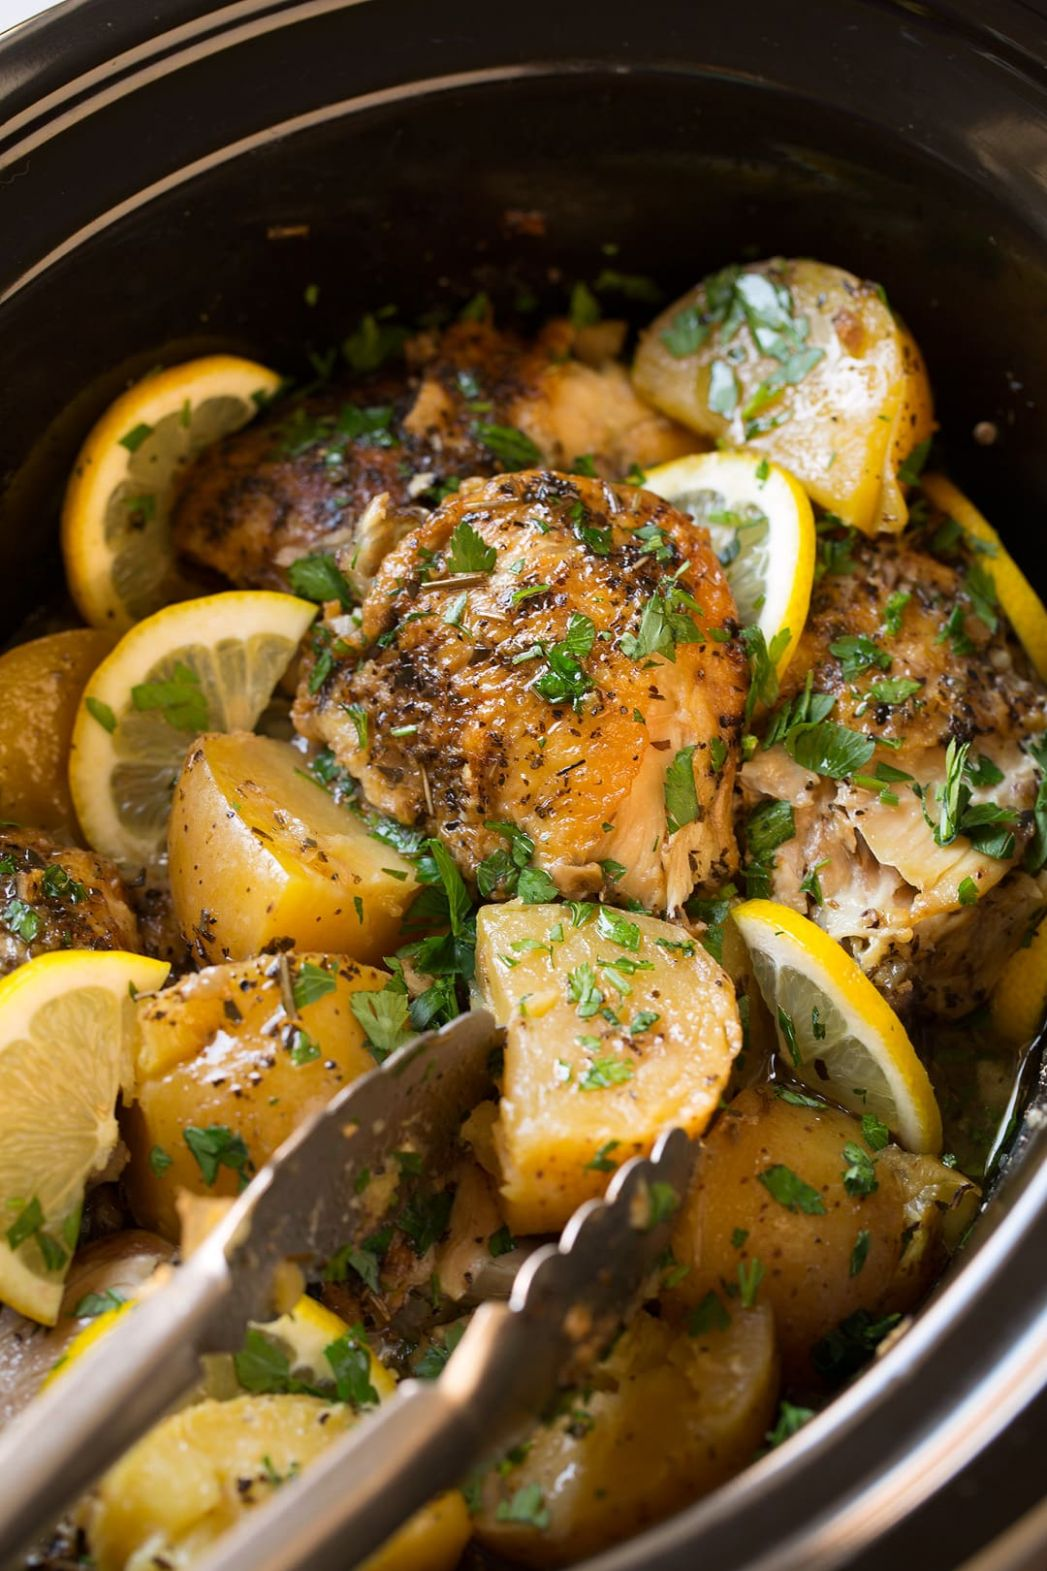 Greek Slow Cooker Lemon Chicken and Potatoes - Recipes Chicken Breast With Potatoes